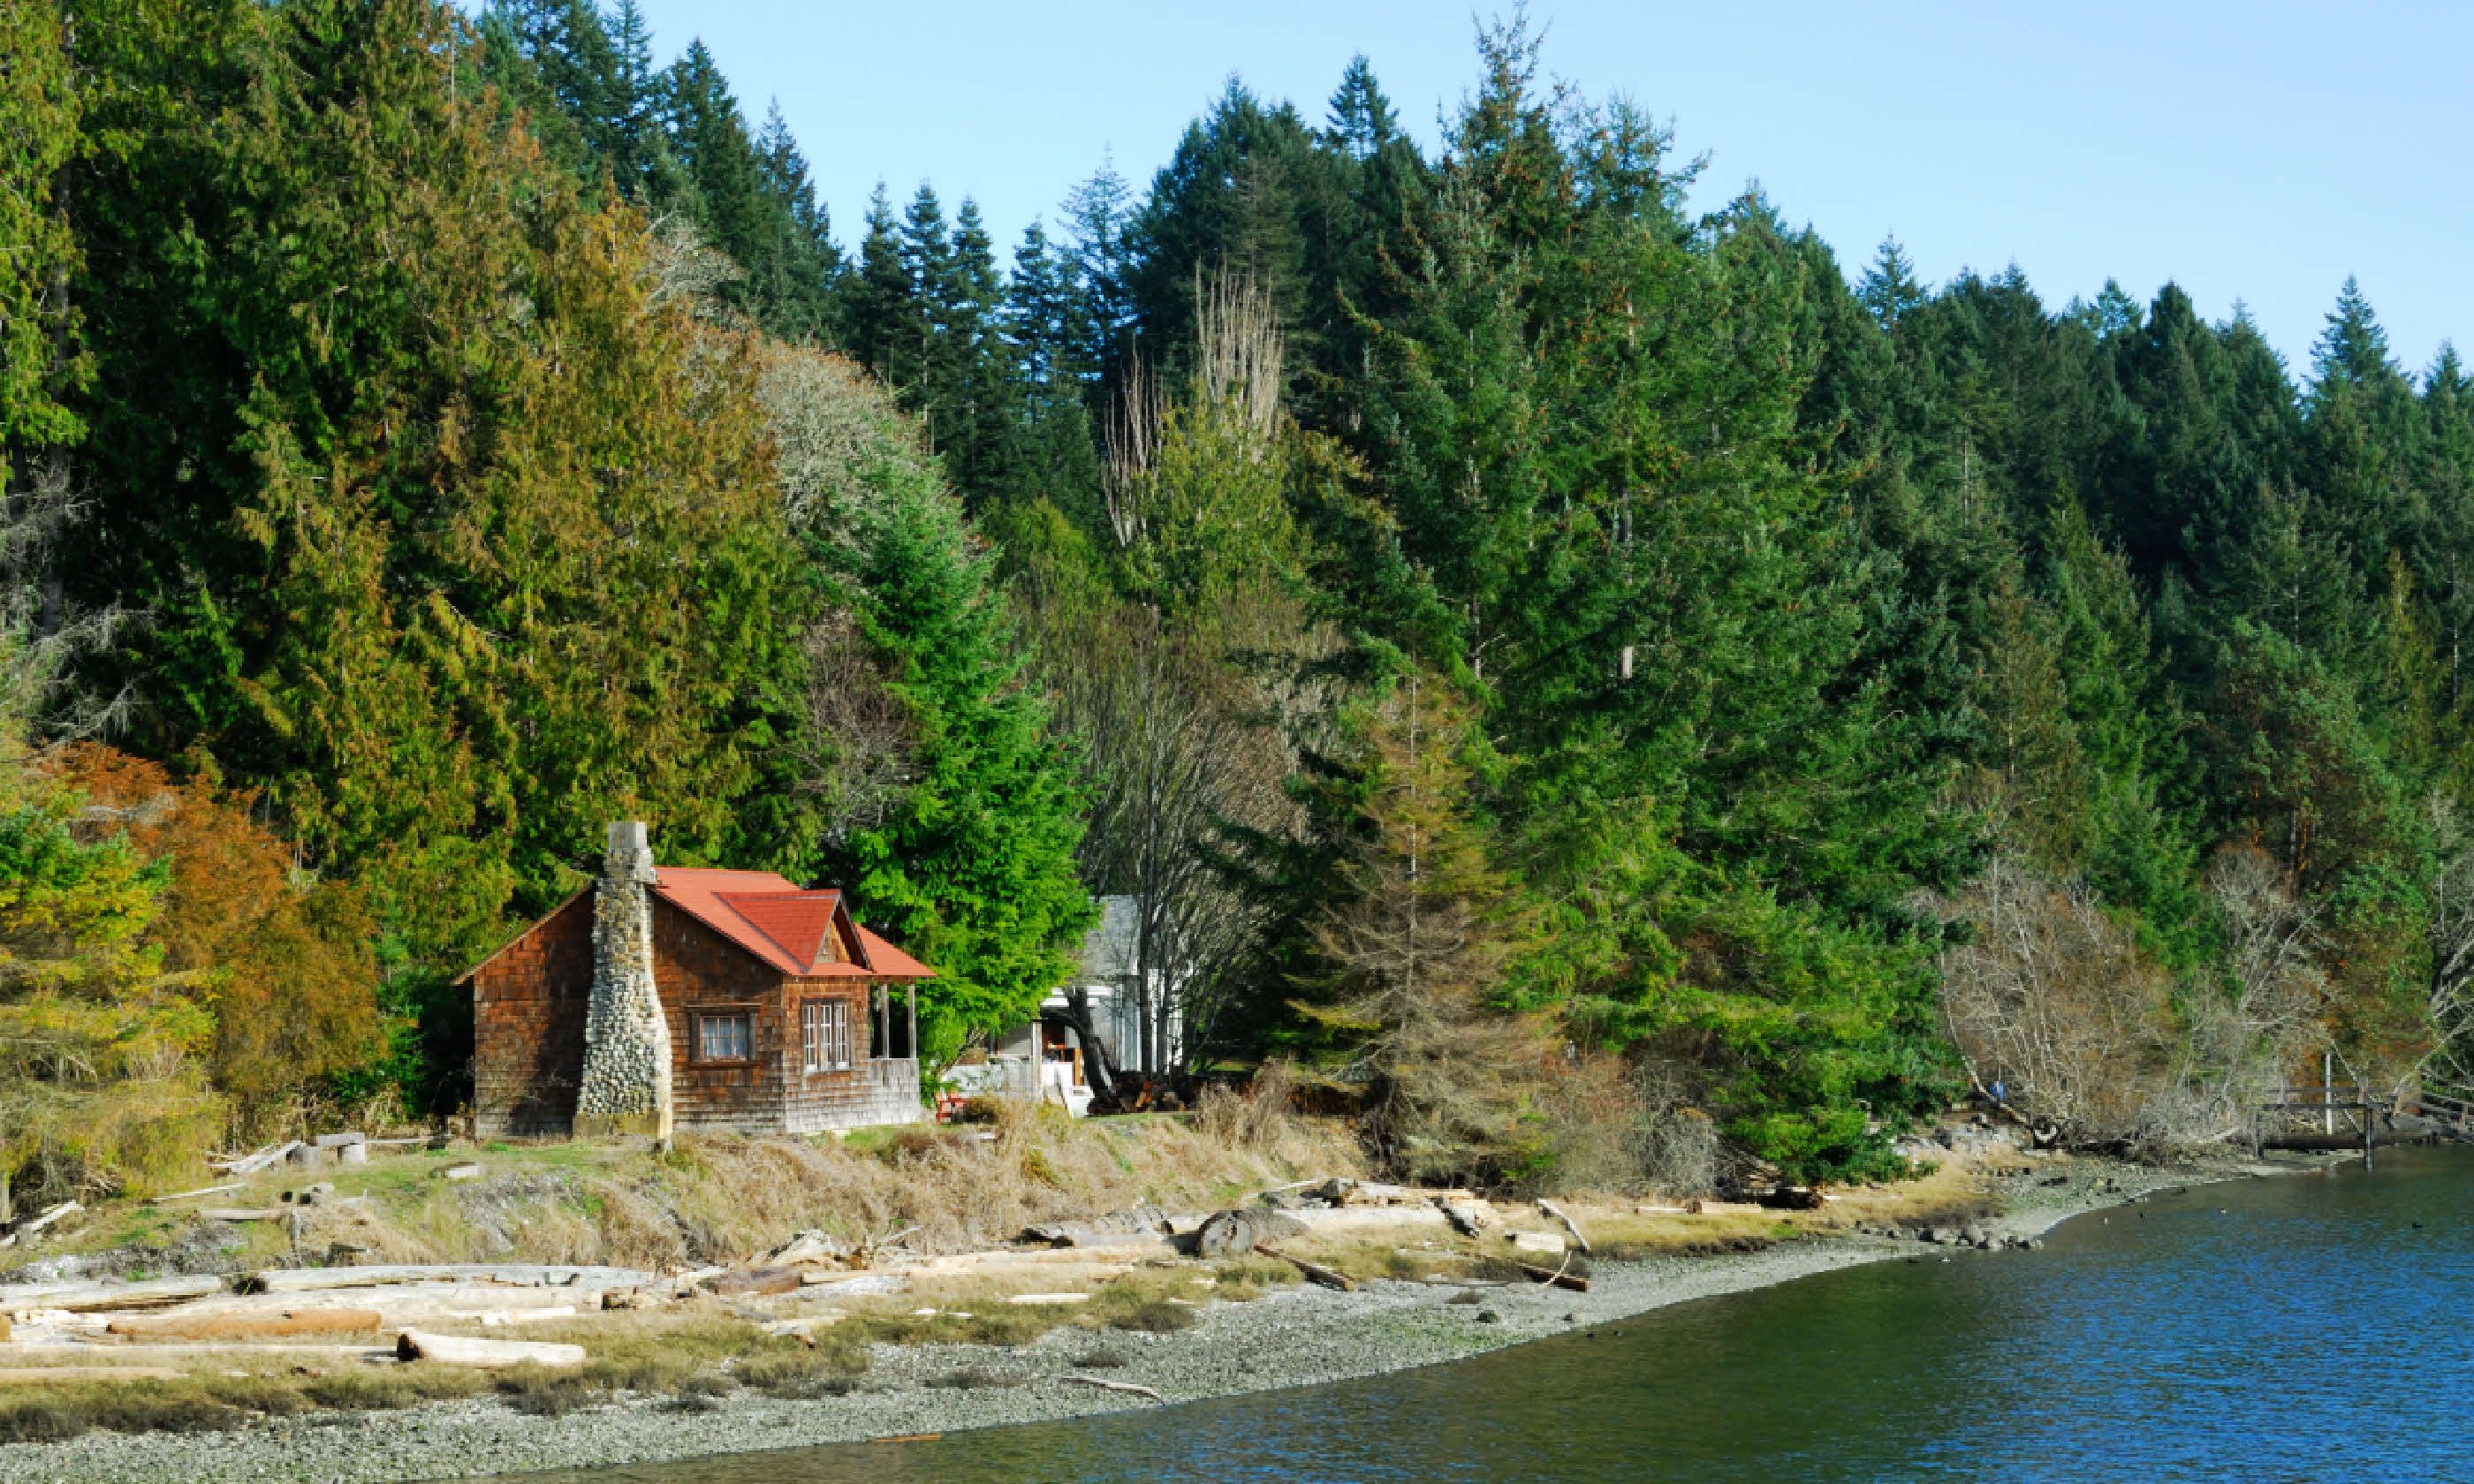 Seaside House on Pender Island (Shutterstock)